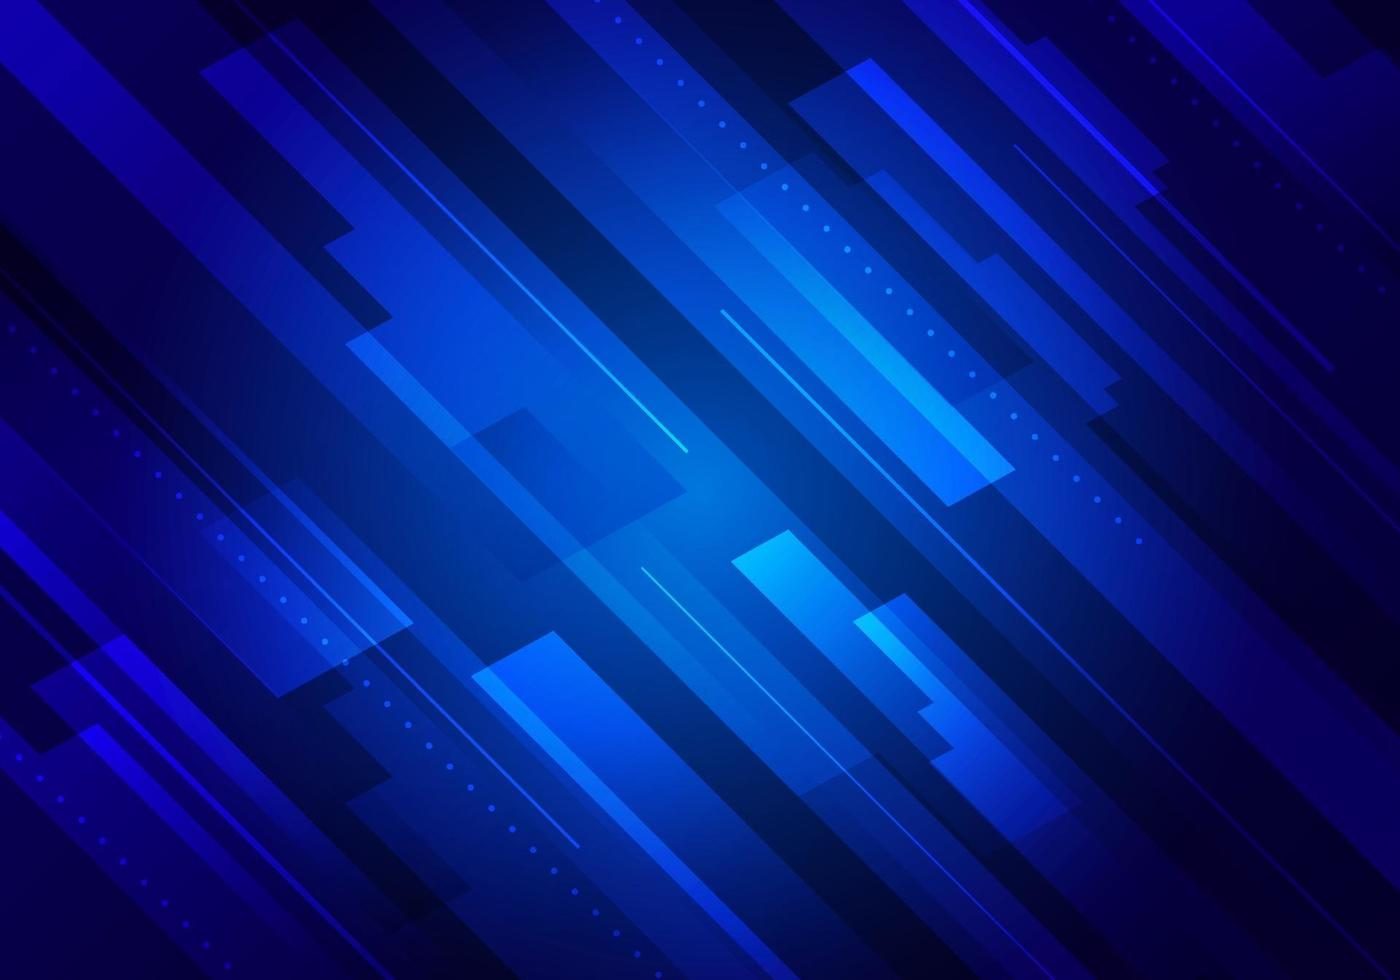 Abstract technology futuristic concept blue glowing diagonal stripes layered on dark background vector